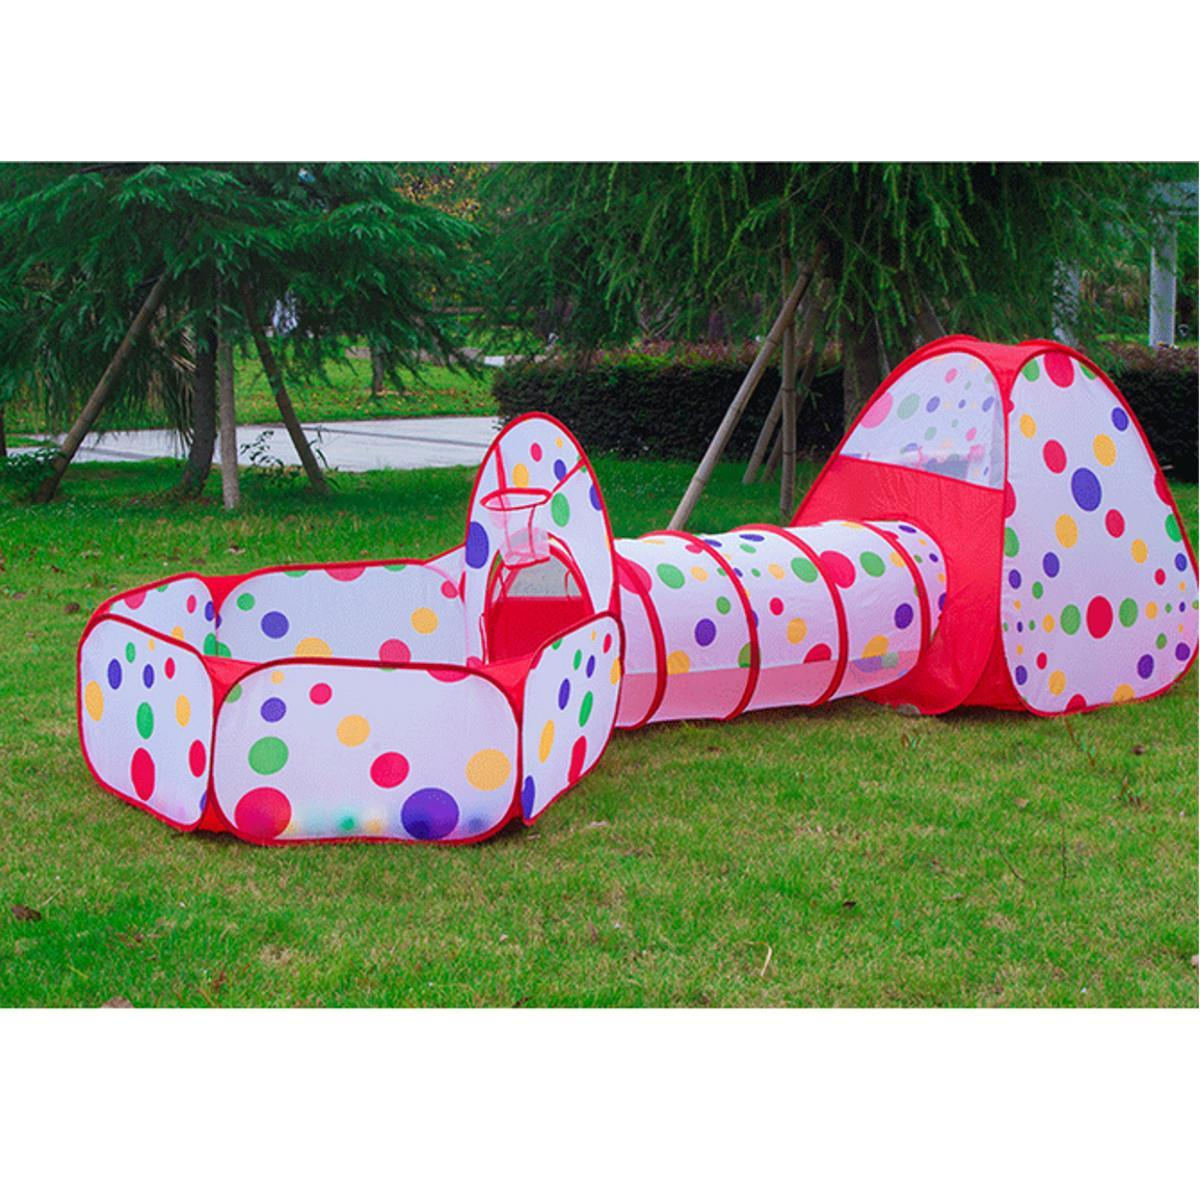 Foldable Kids Toddler Tunnel Pop Up Play Tent Toys For Children Indoor Outdoor Playhouse Kids Play Gaming Toys Childrens Play Tents Tent For Kids From Sto4 ...  sc 1 st  DHgate.com & Foldable Kids Toddler Tunnel Pop Up Play Tent Toys For Children ...